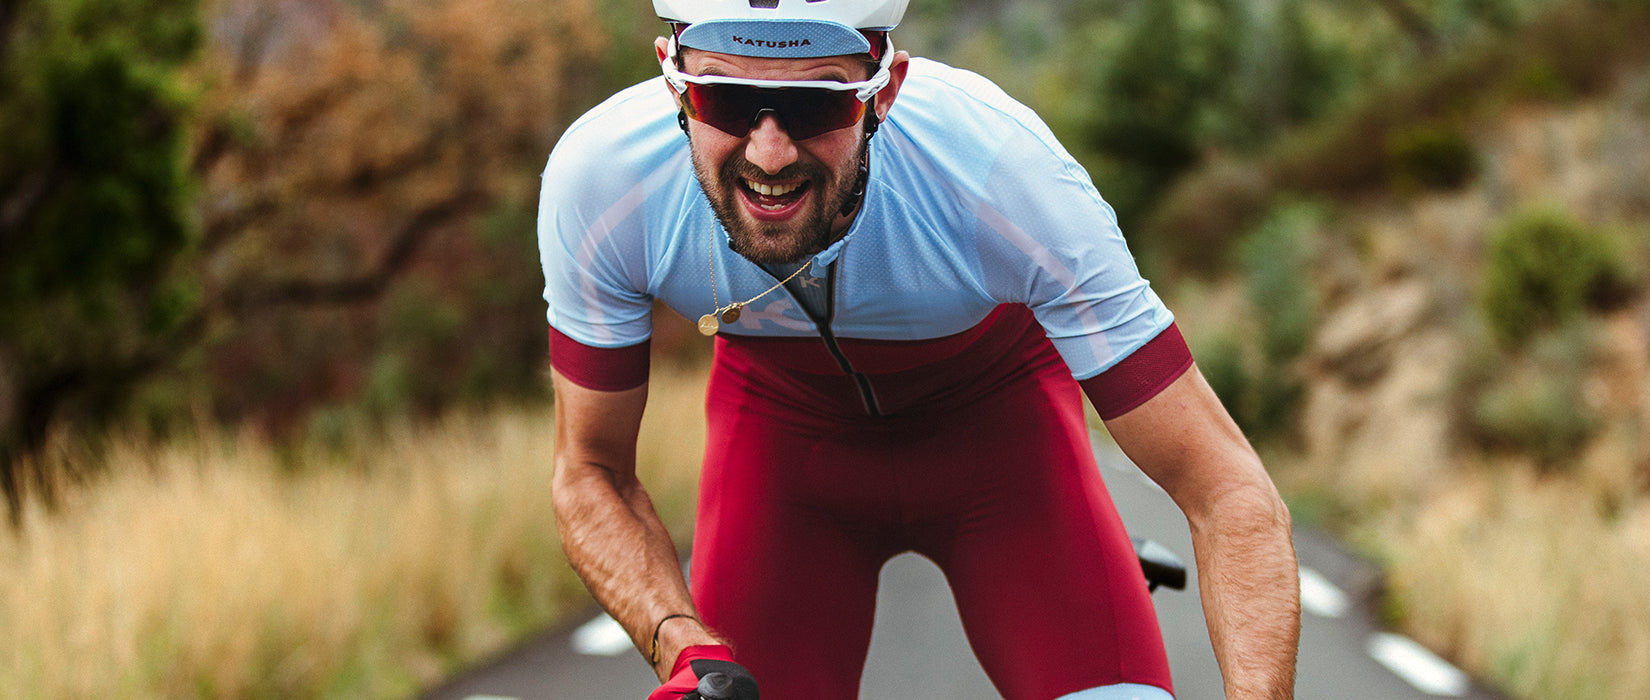 KATUSHA Cycling Clothing - Breakaway Men - Spring Summer 2020